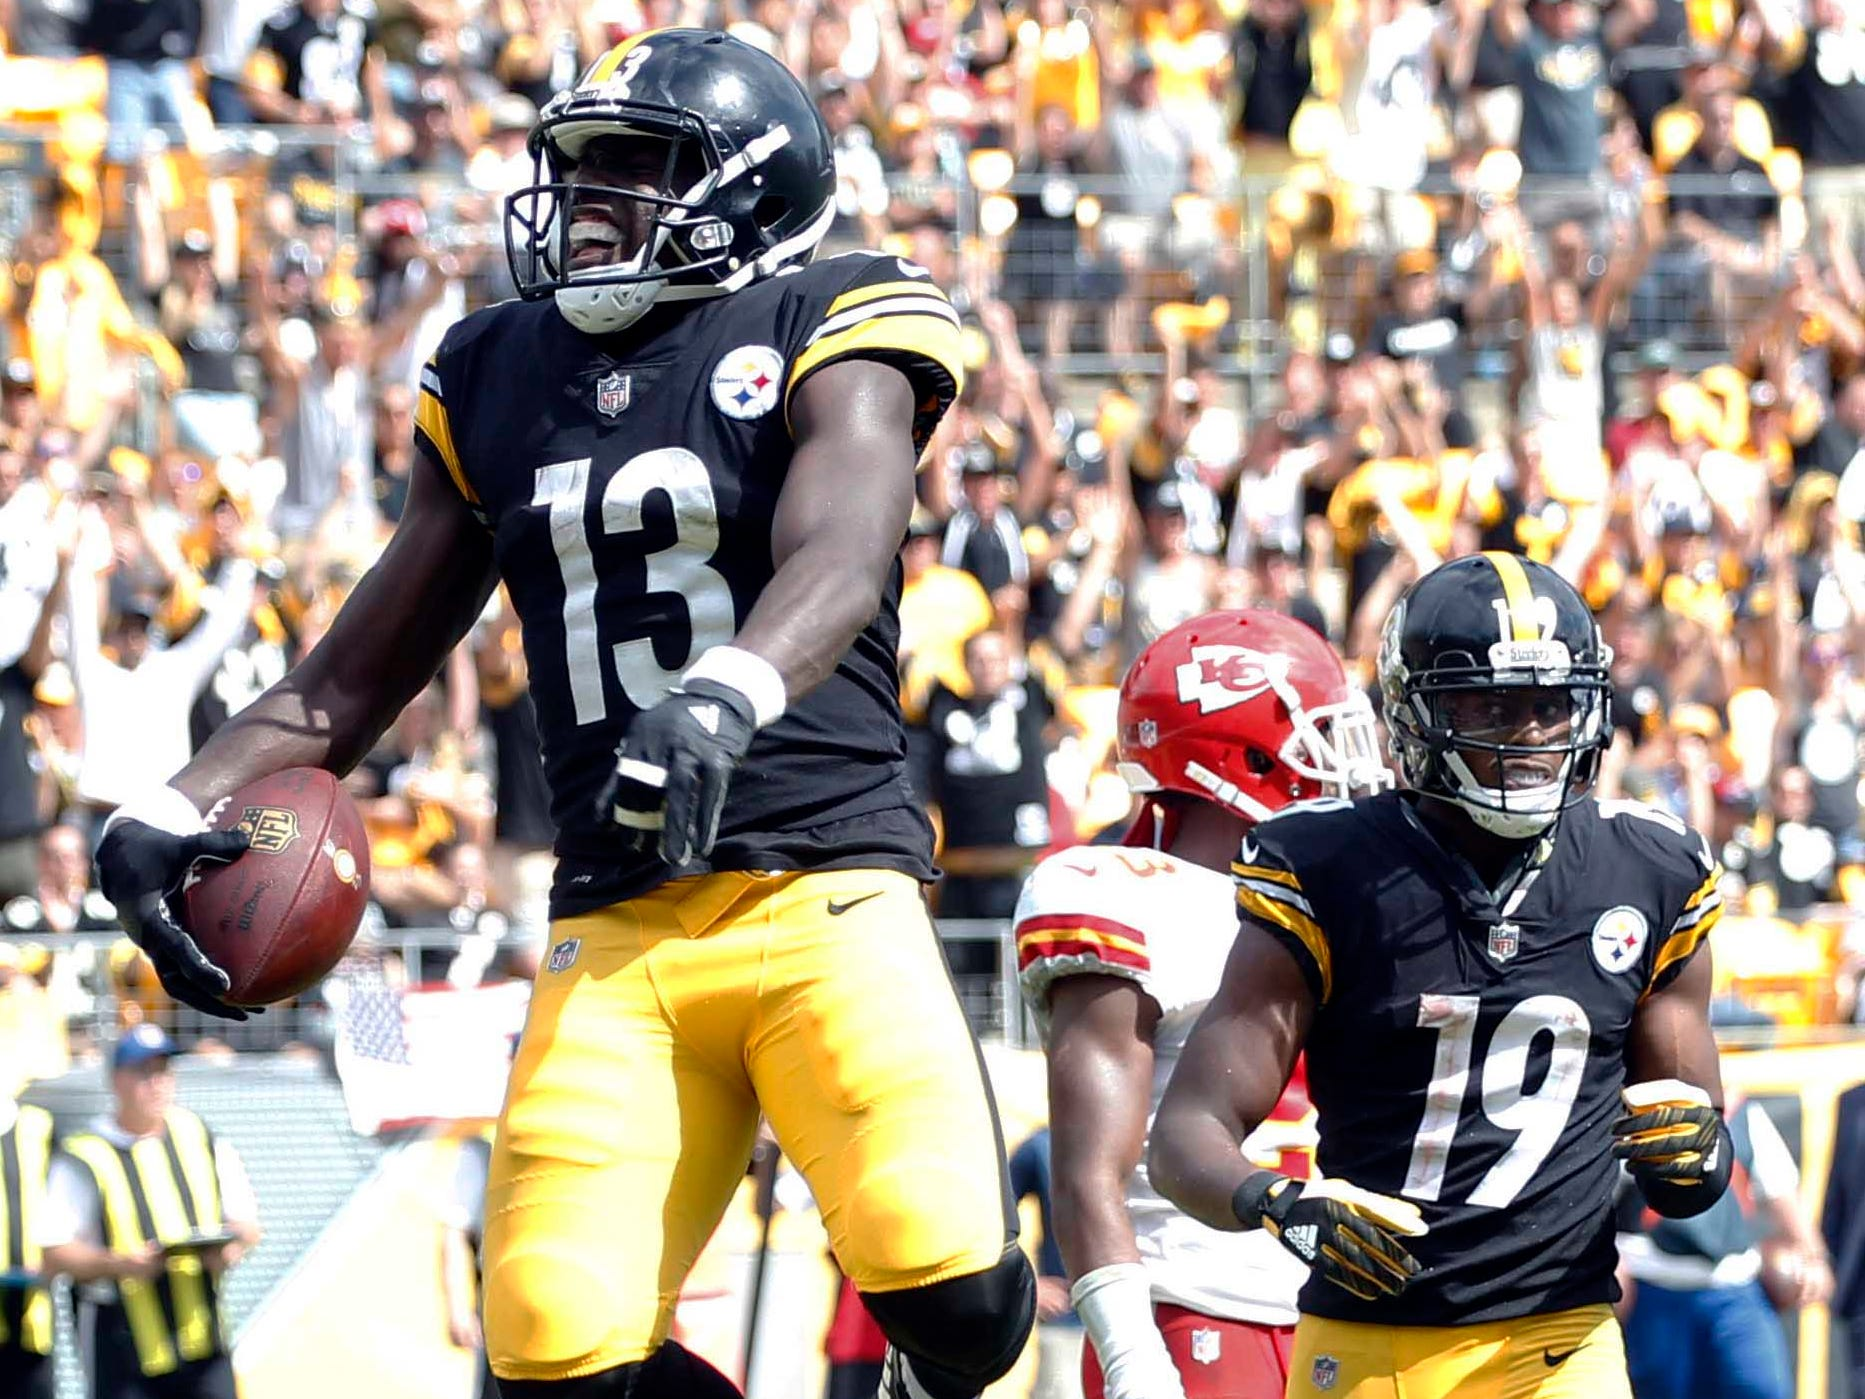 Pittsburgh Steelers wide receiver James Washington celebrates his touchdown catch against the Kansas City Chiefs during the second quarter at Heinz Field.